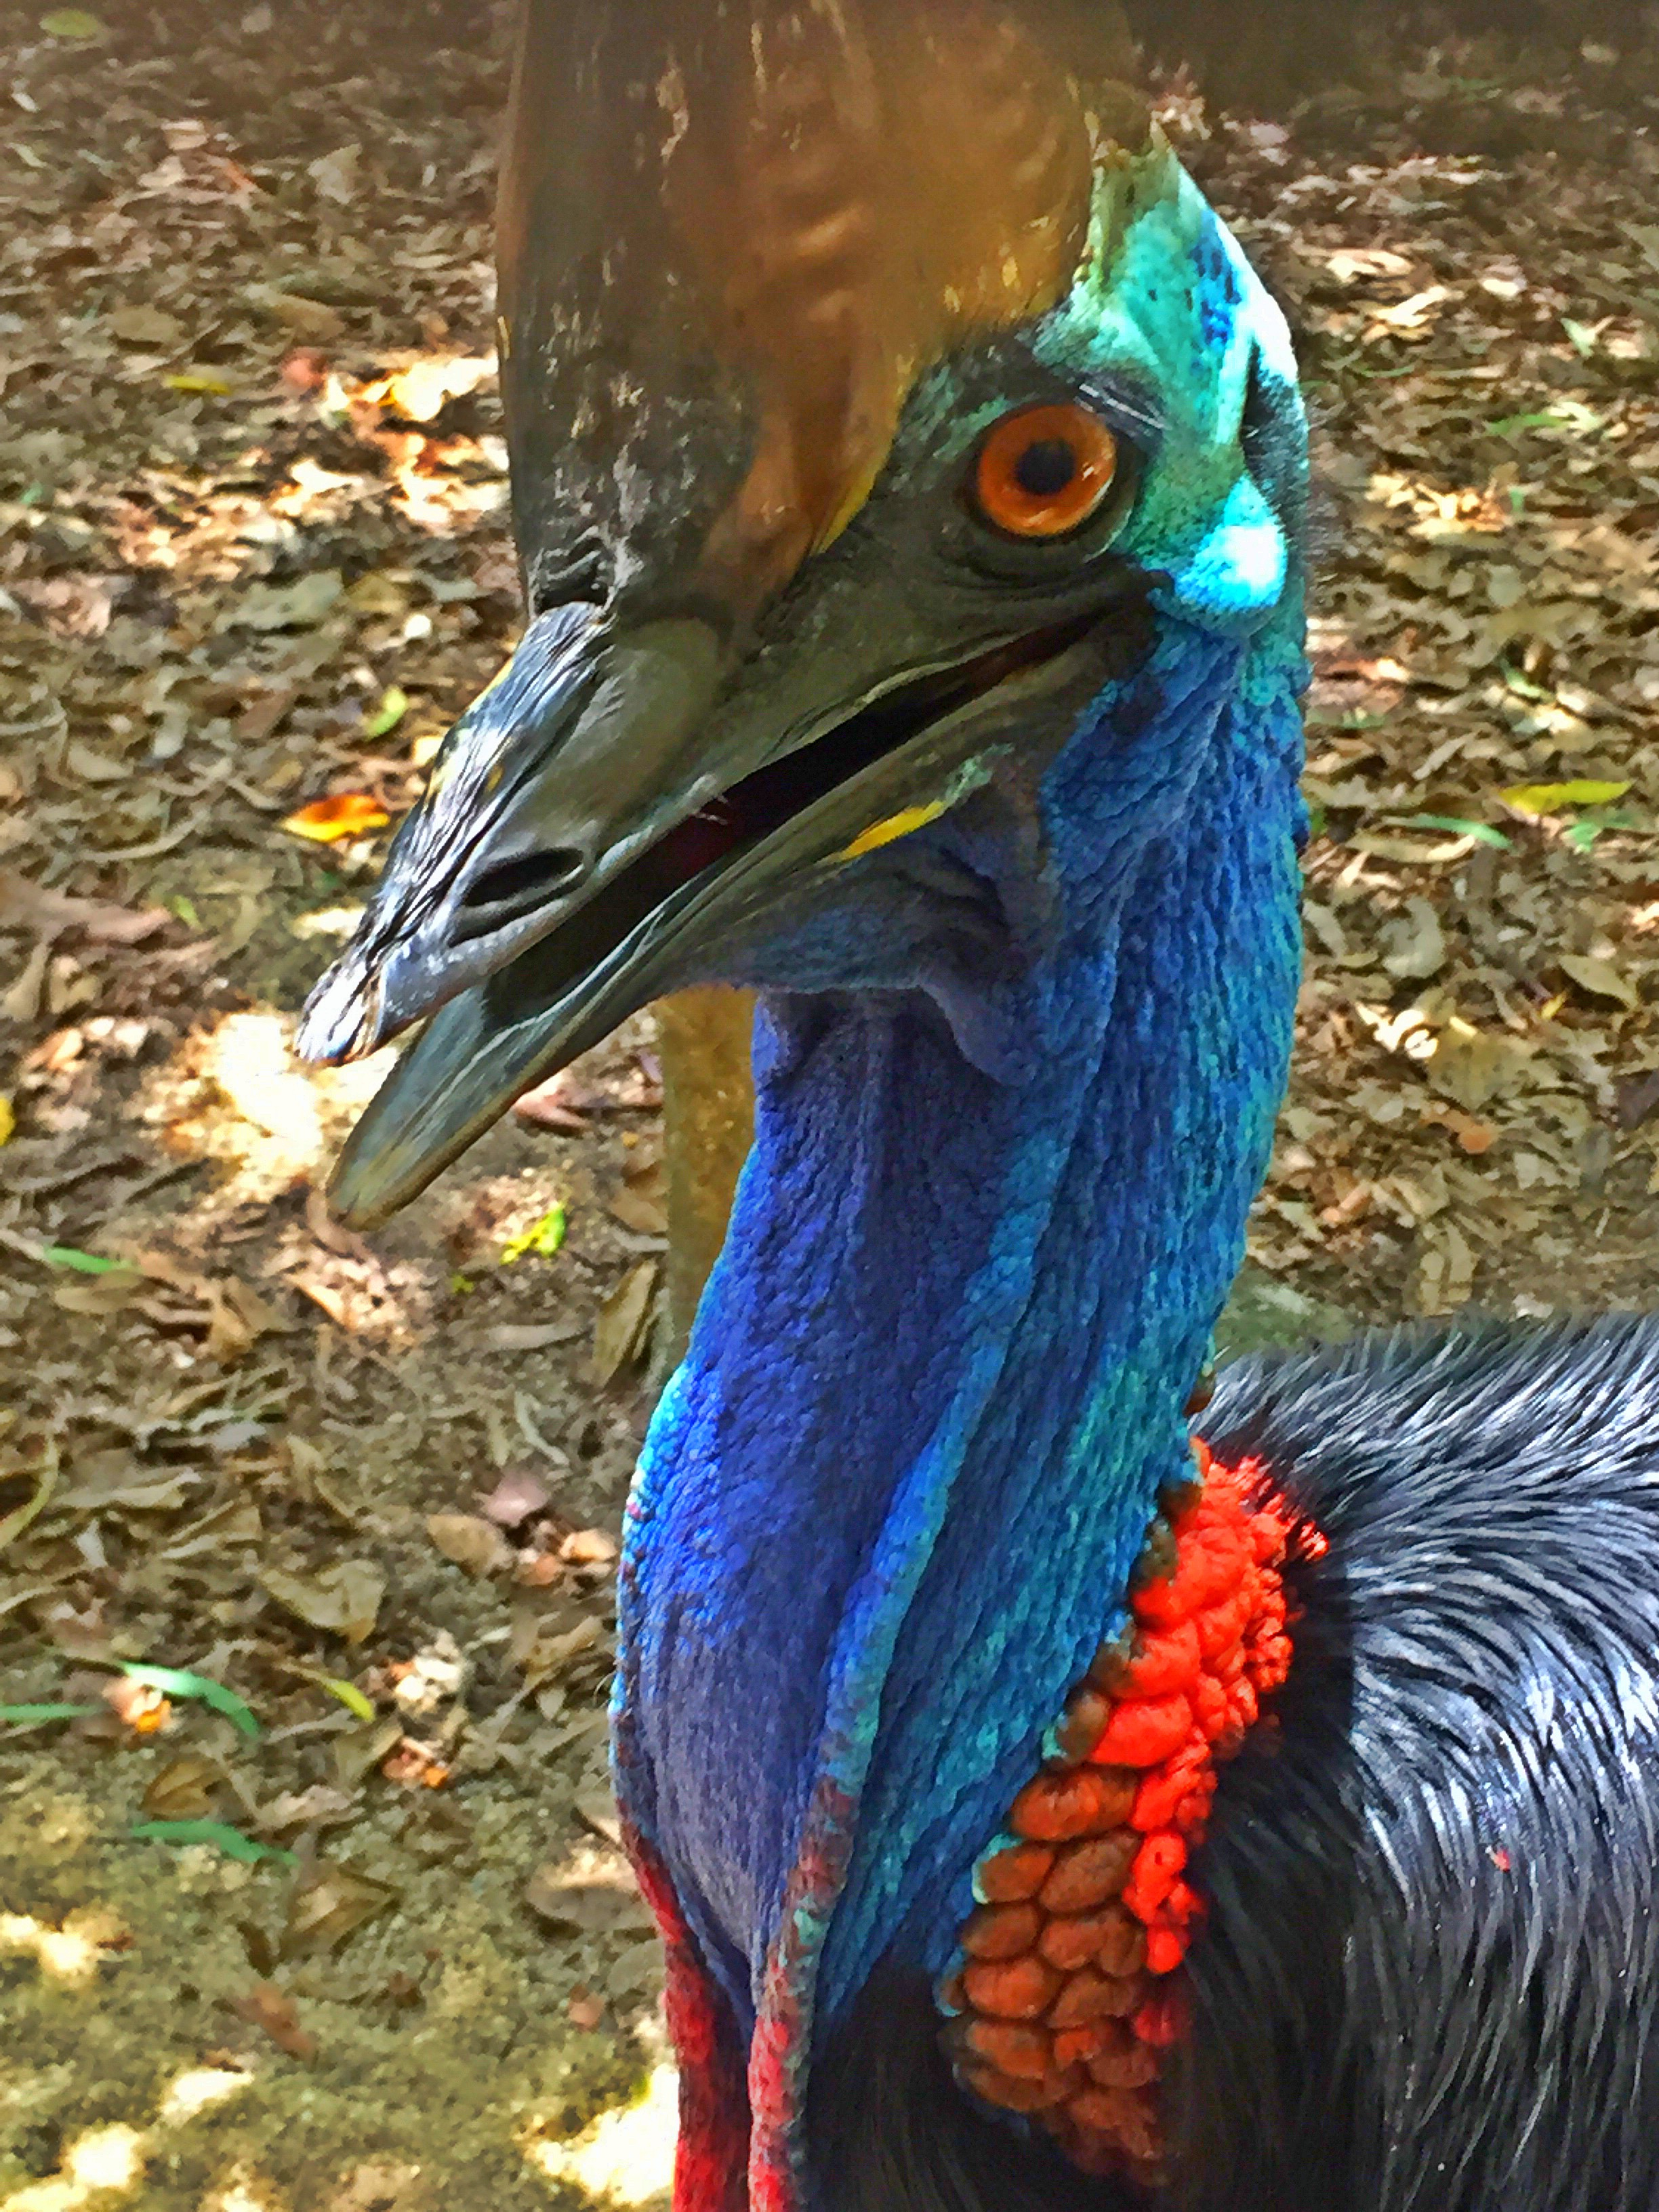 Cassowary - a relative of the Kiwi bird